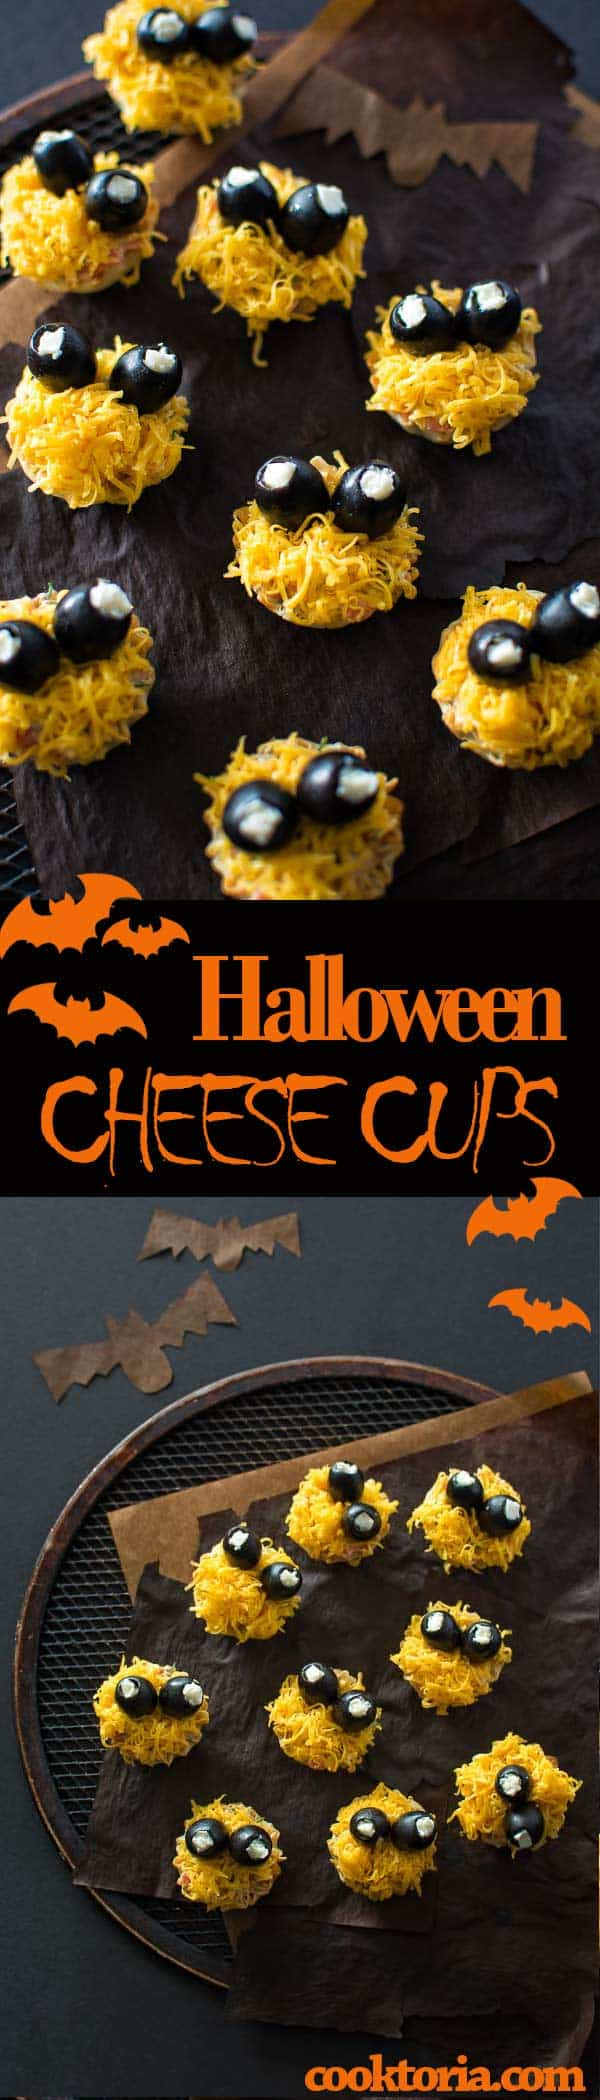 Mini fillo shells, stuffed with tasty cheese salad and garnished with olives, make these cute Halloween Cheese Cup monsters. ❤ COOKTORIA.COM